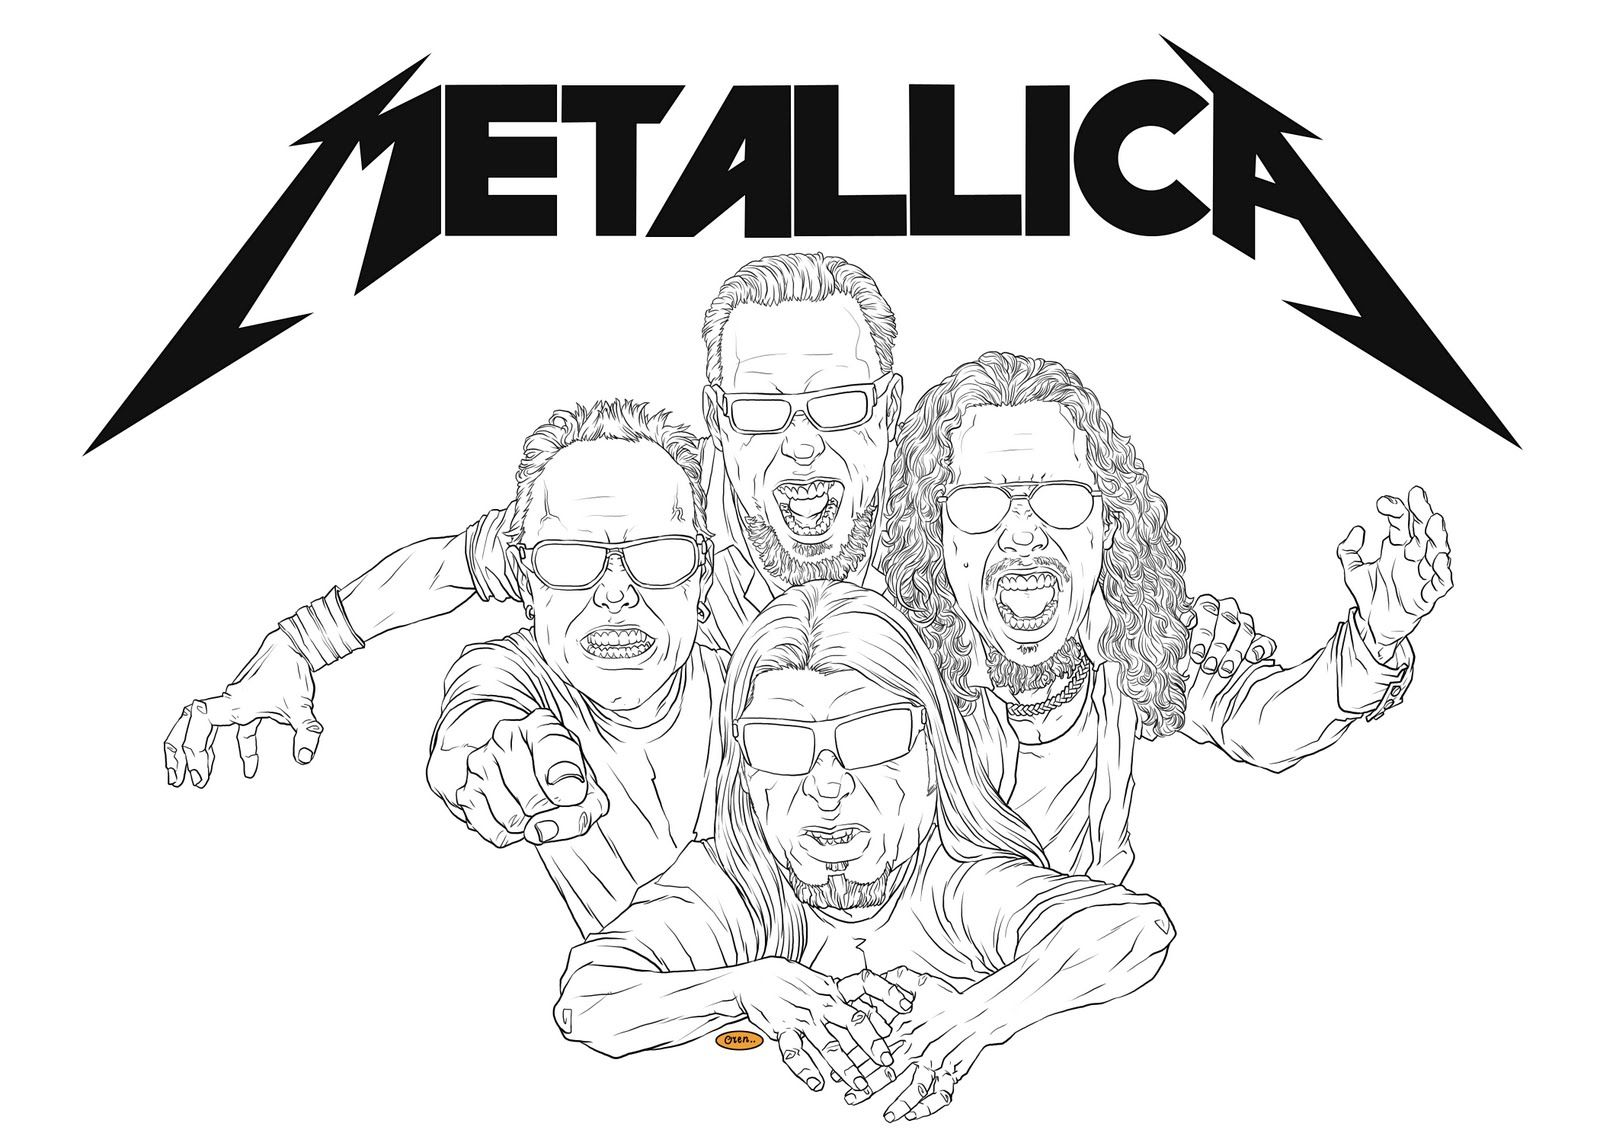 Rock n roll coloring pages - Metallica Coloring Pages Metallica Colouring Pages Page 2